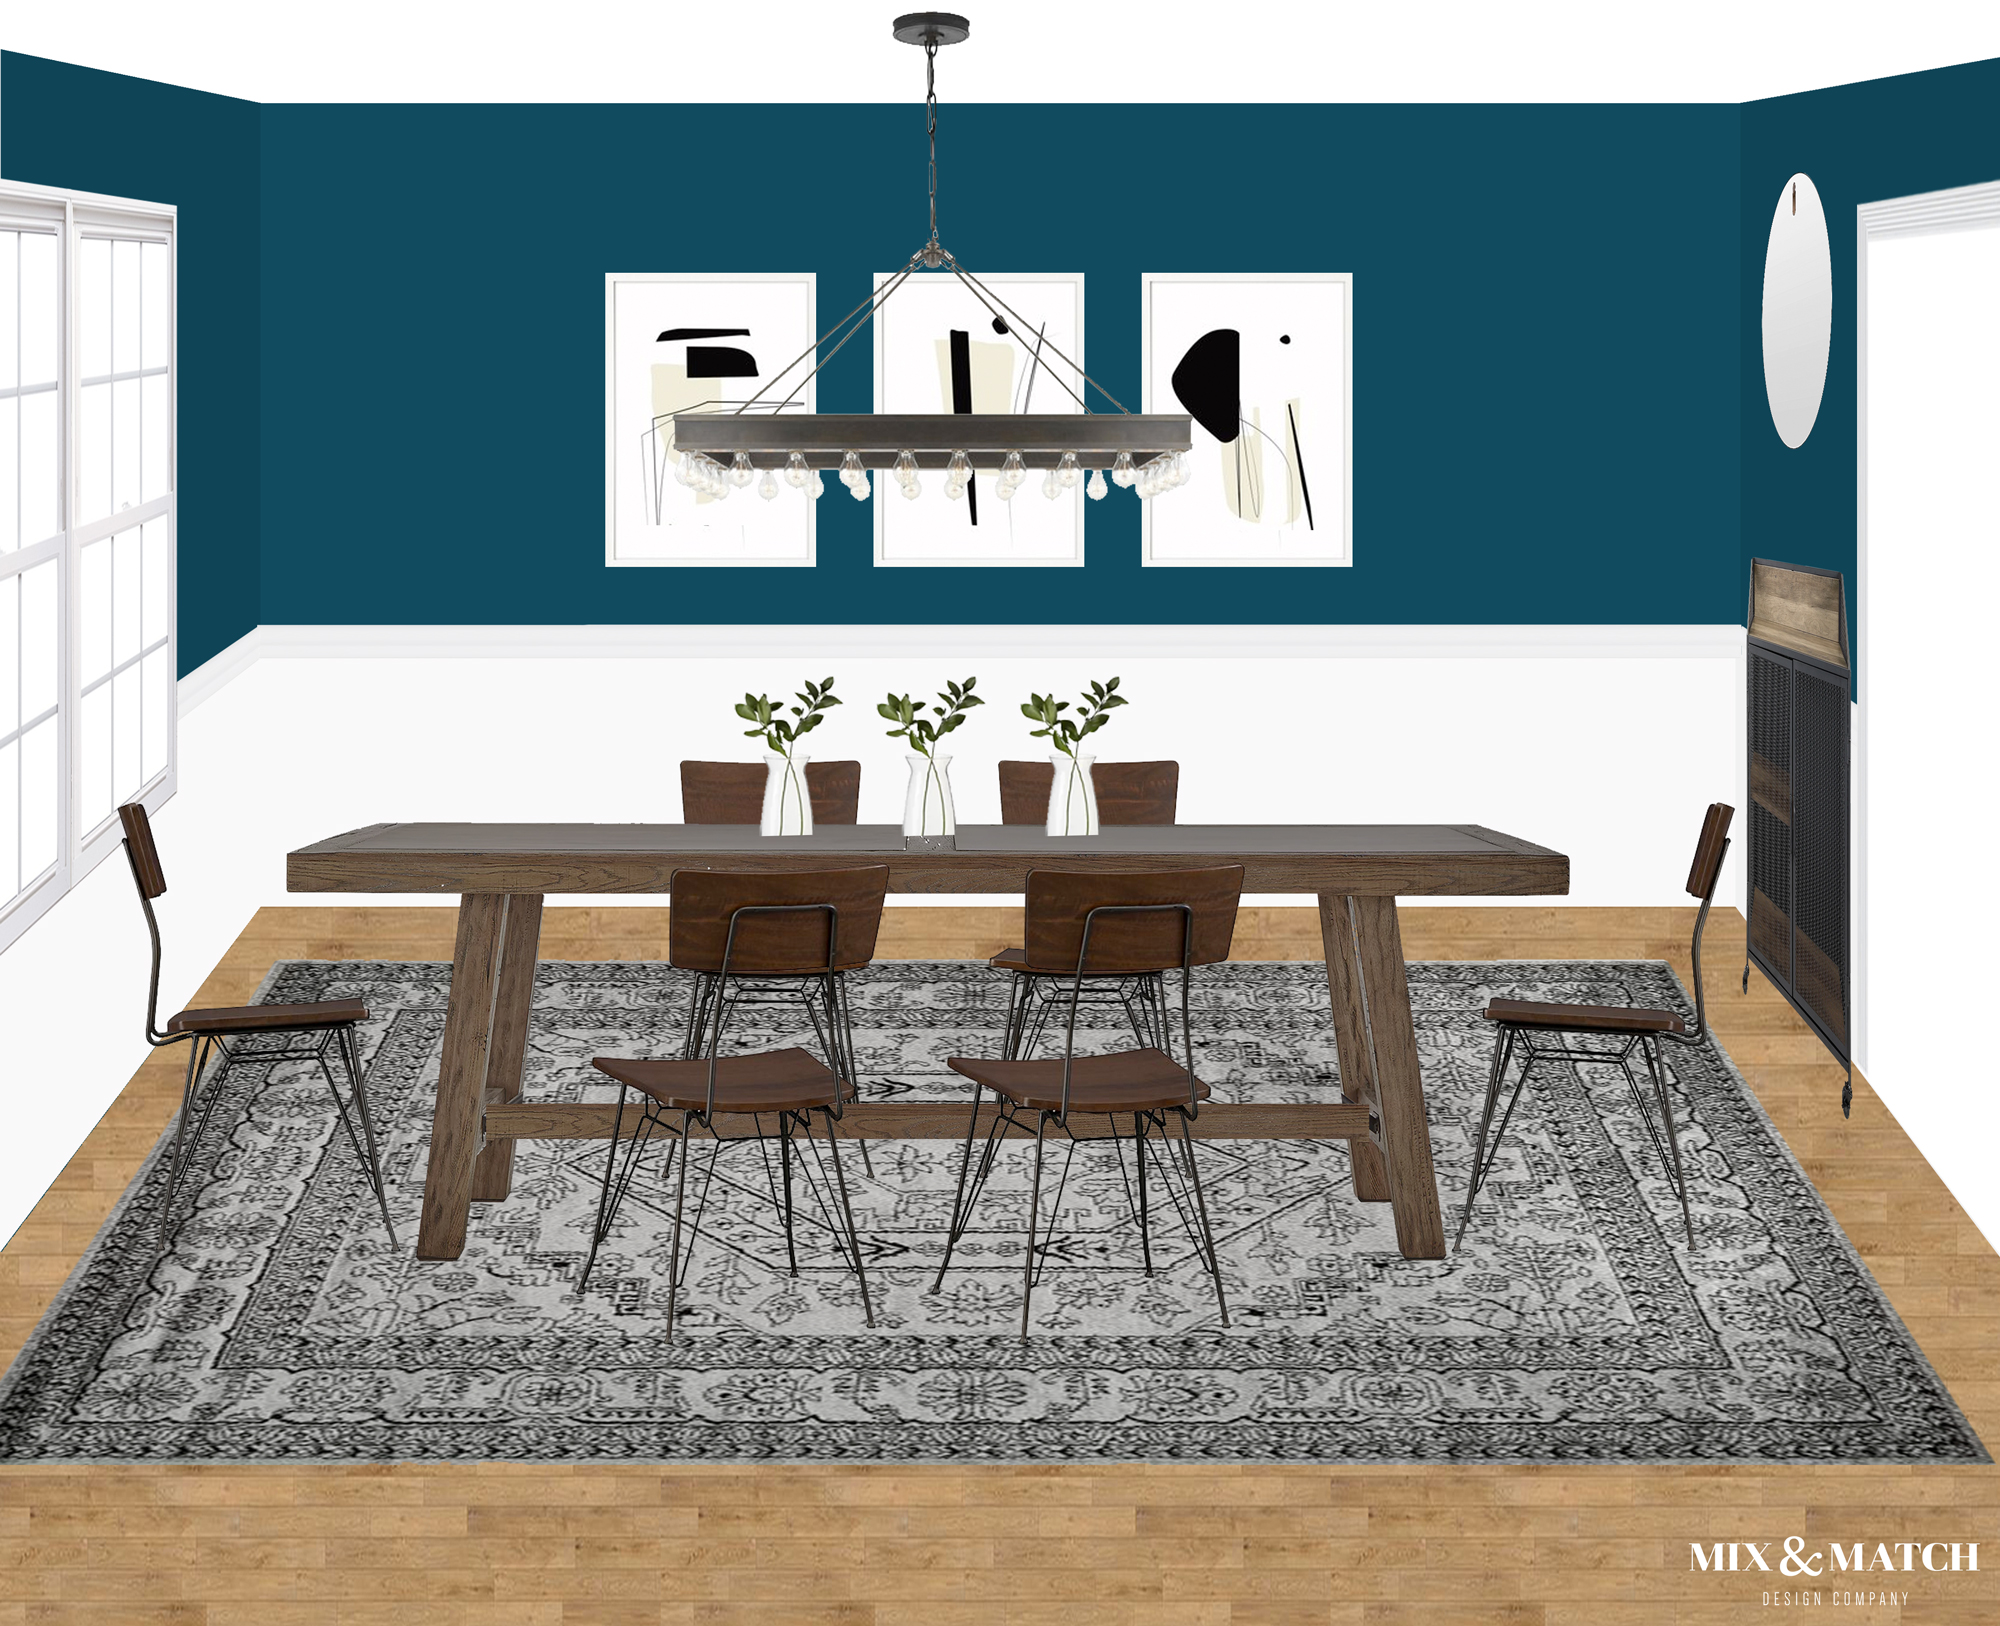 Are you redecorating your home in 2019? Let's chat! My approachable and affordable e-design packages might be just the right fit. Get the design help you need from Mix & Match Design Company's virtual interior design services and turn your home into a space you love! // industrial dining room, industrial modern dining room, blue dining room